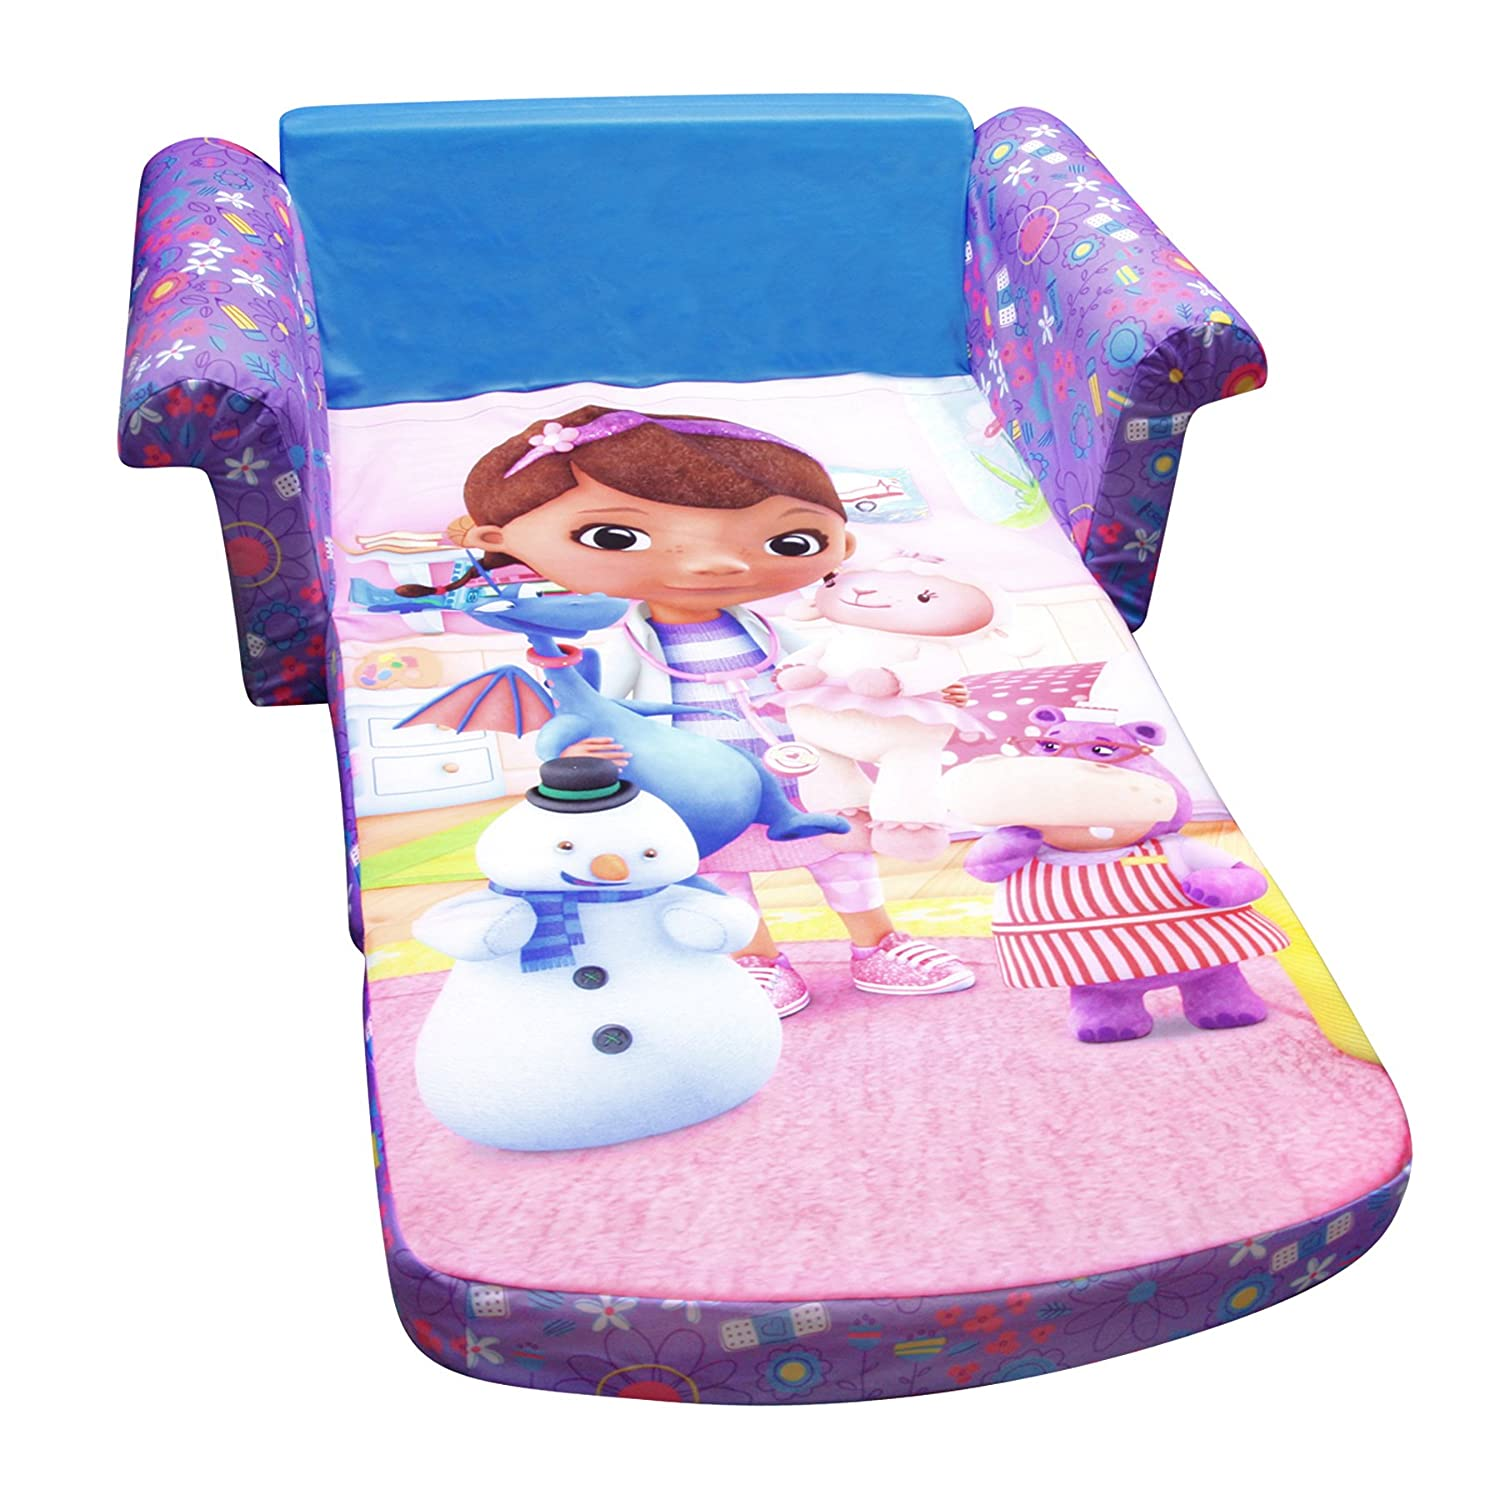 doc mcstuffins chair smyths will medicare pay for a lift fun sofa beds kids and teens christmas gifts